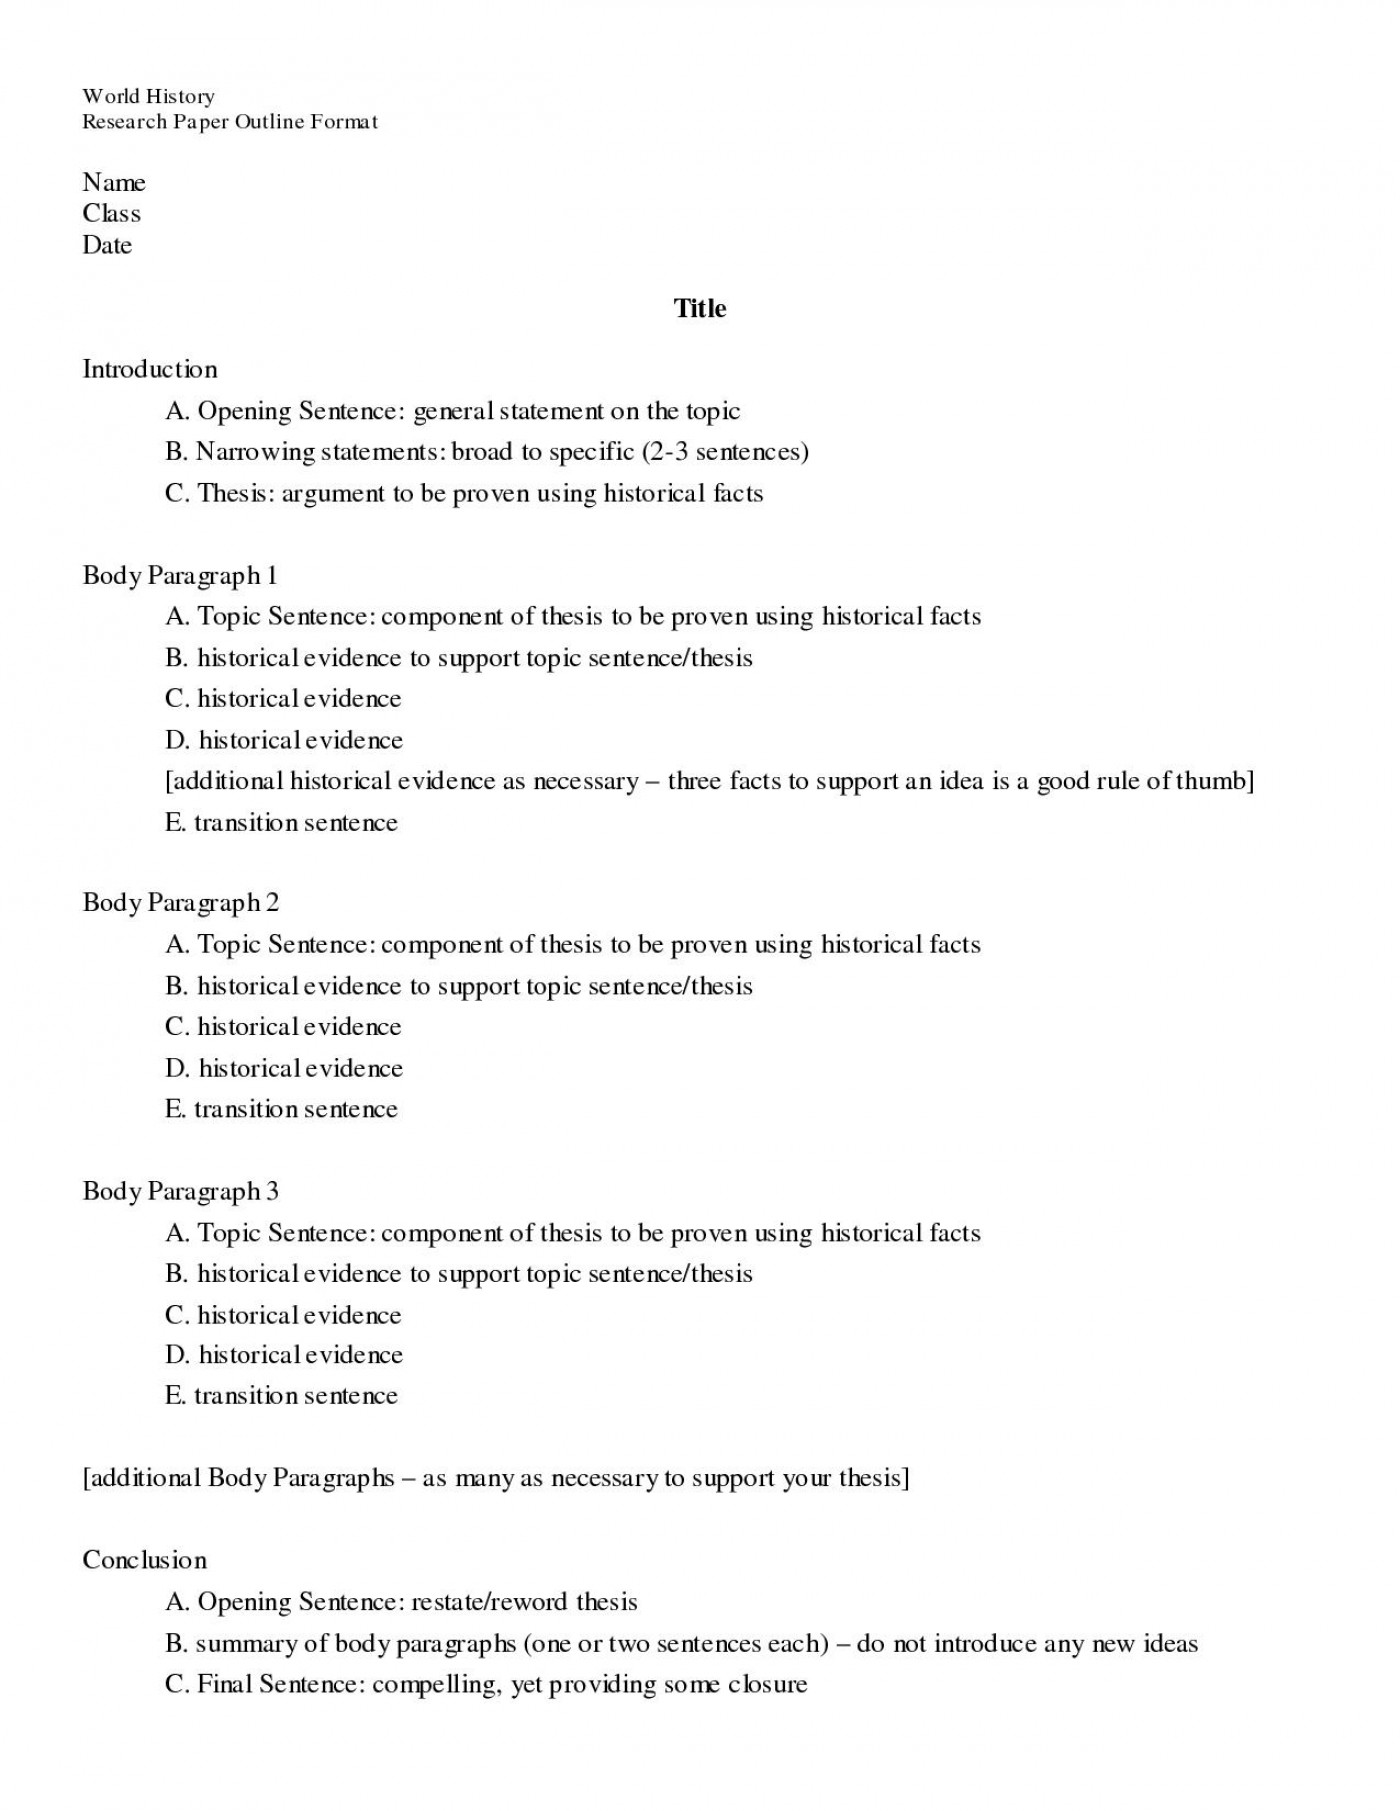 012 Outline Image1 Sample Outlines For Researchs Awful Research Papers Writing 1400